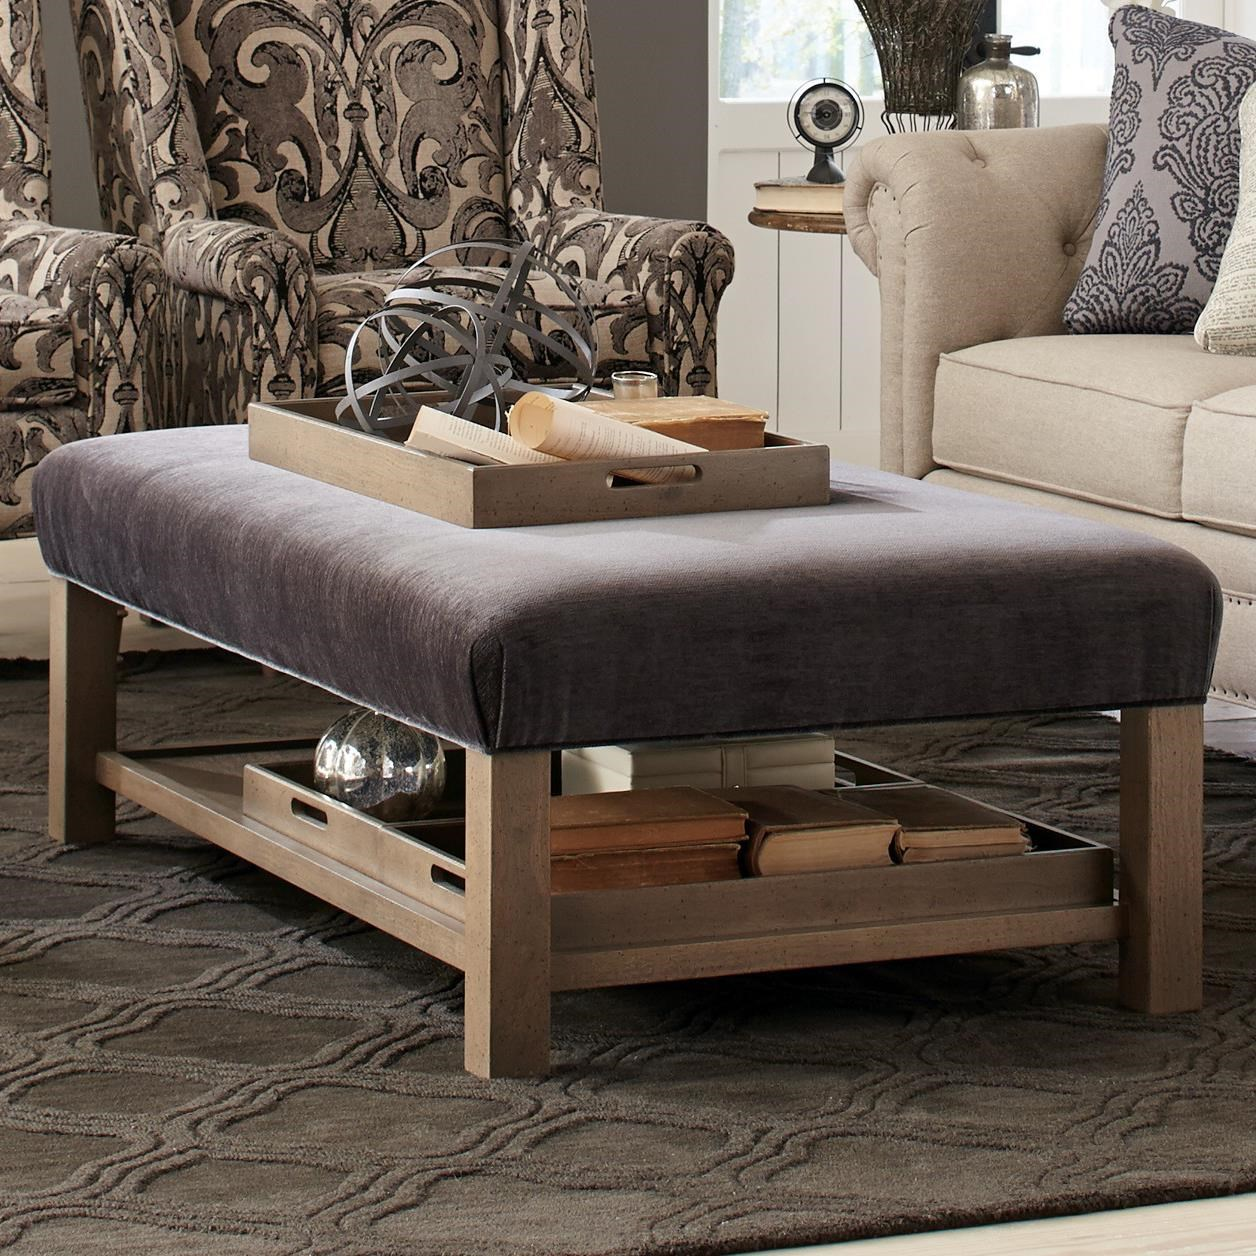 craftmaster living room furniture how to arrange around tv accent ottomans contemporary storage bench ...